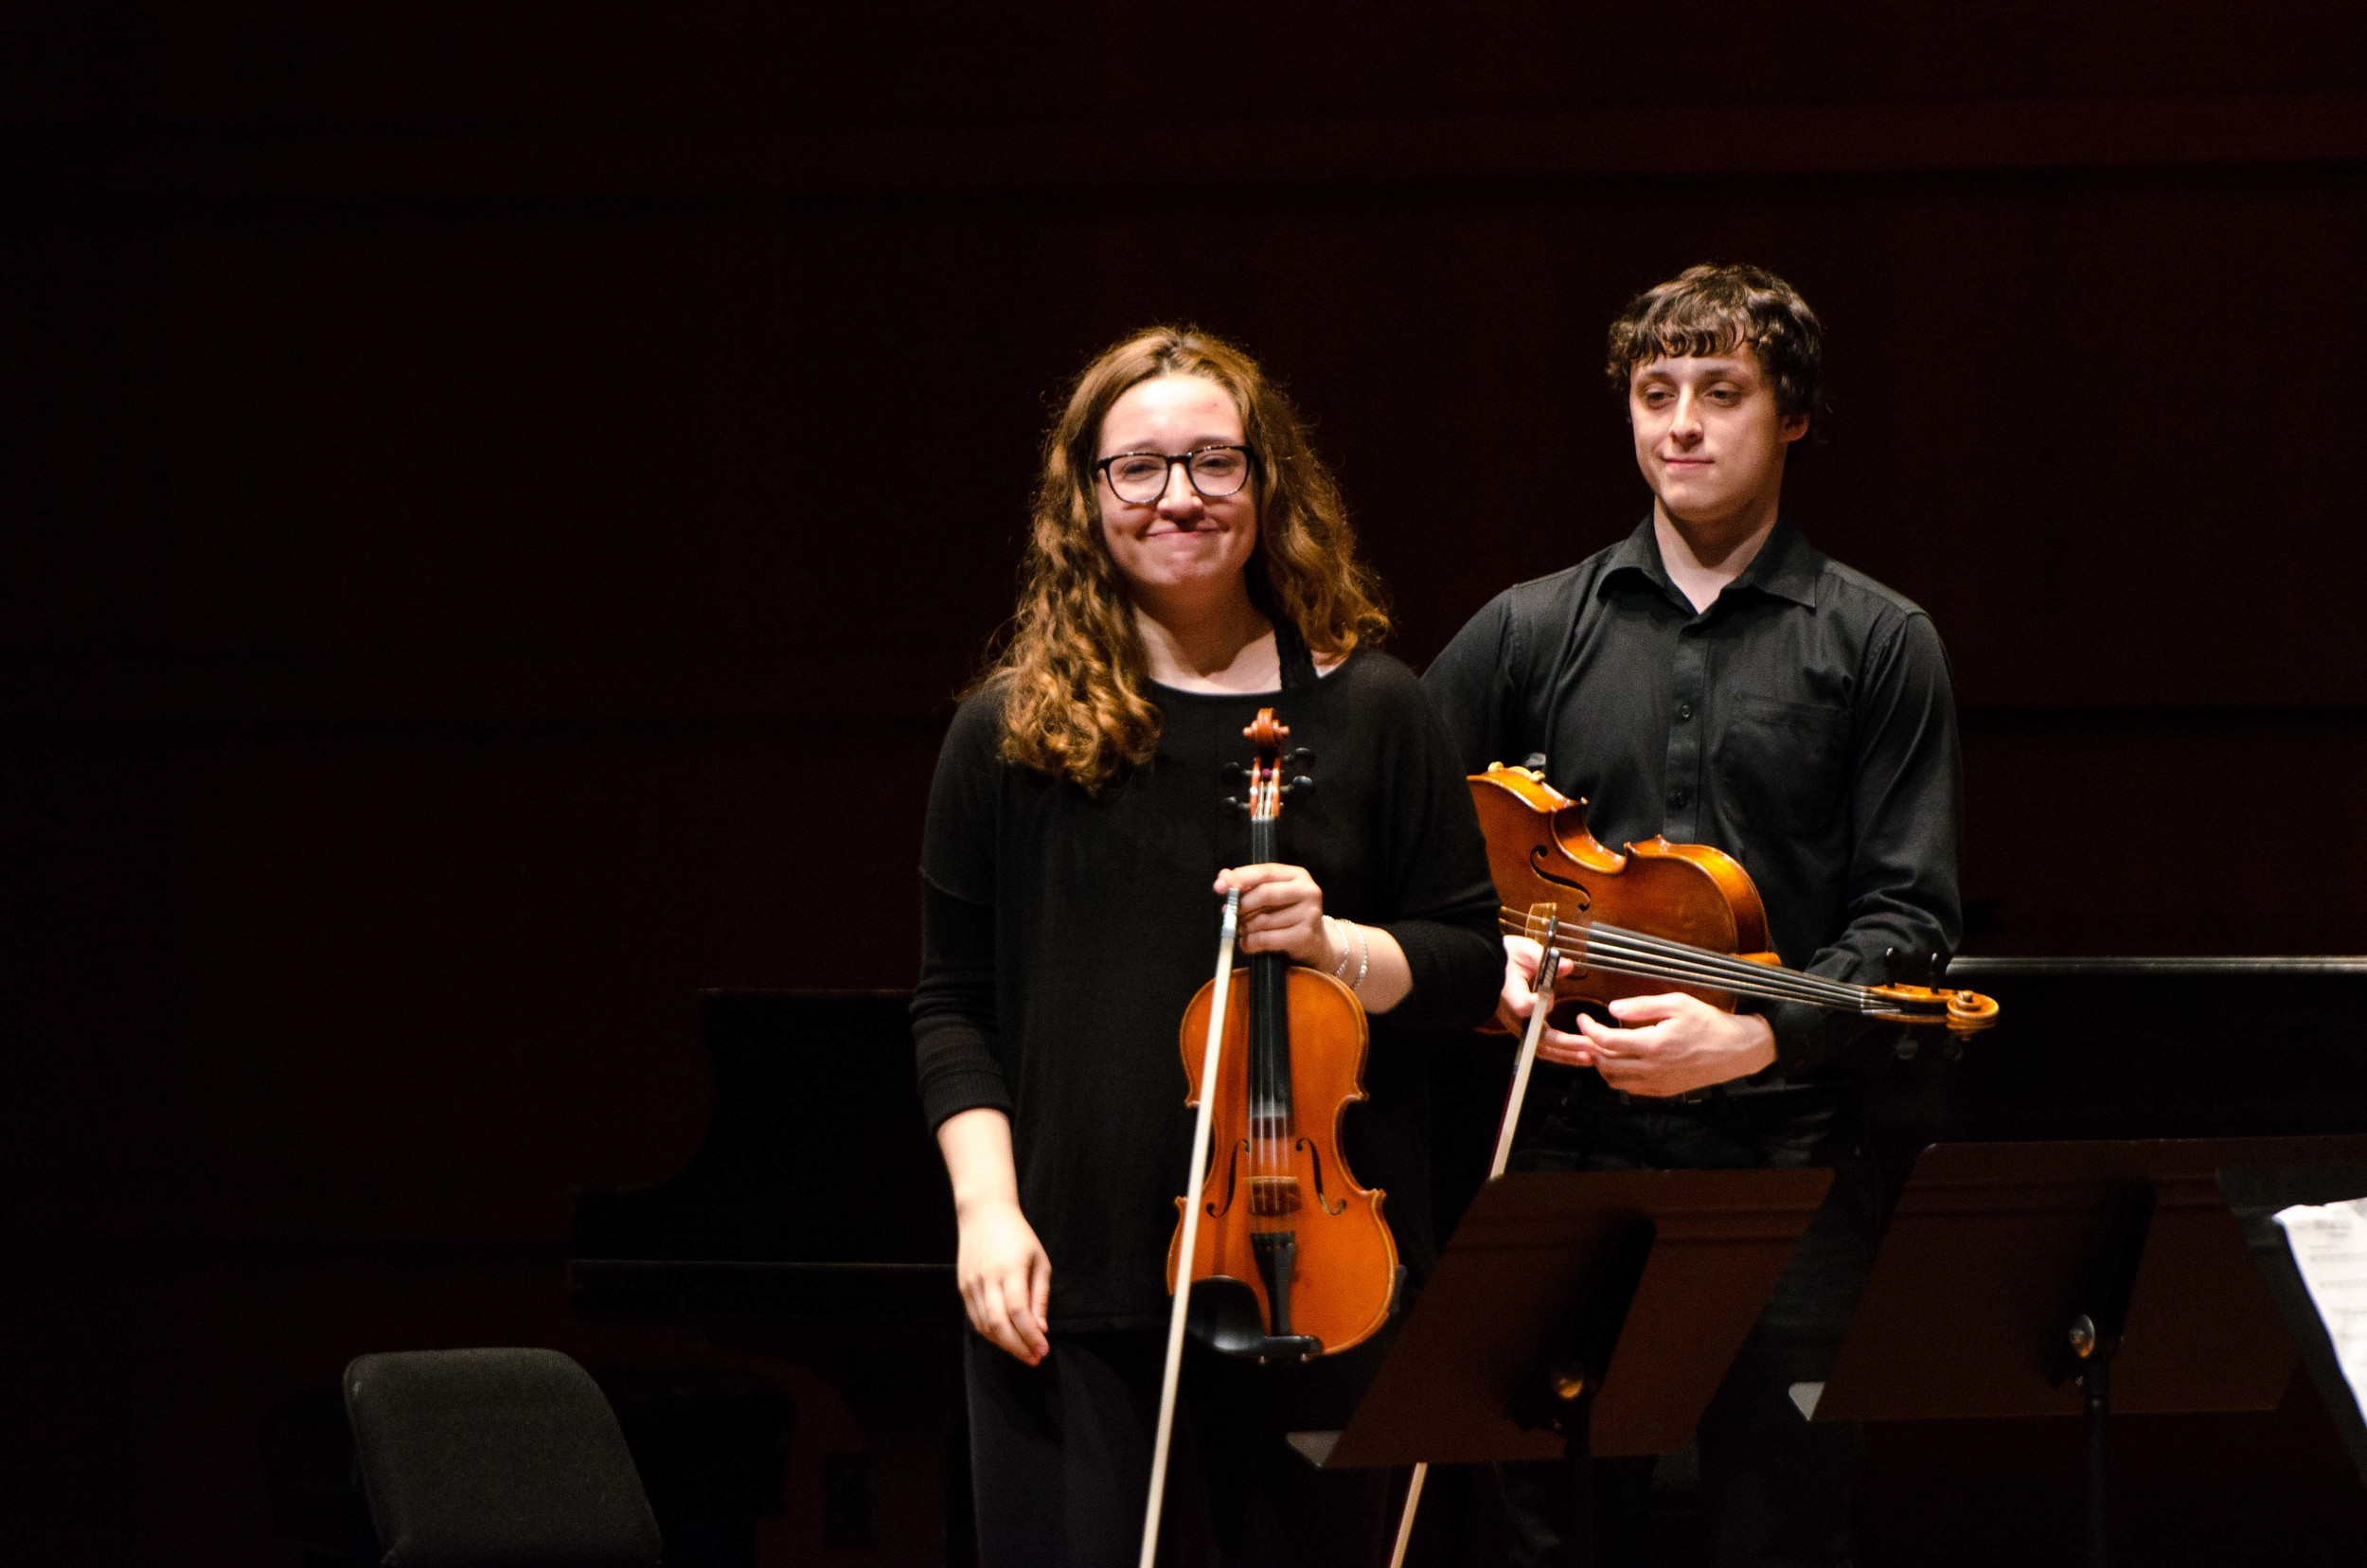 Part of the string quartet after their first piece.